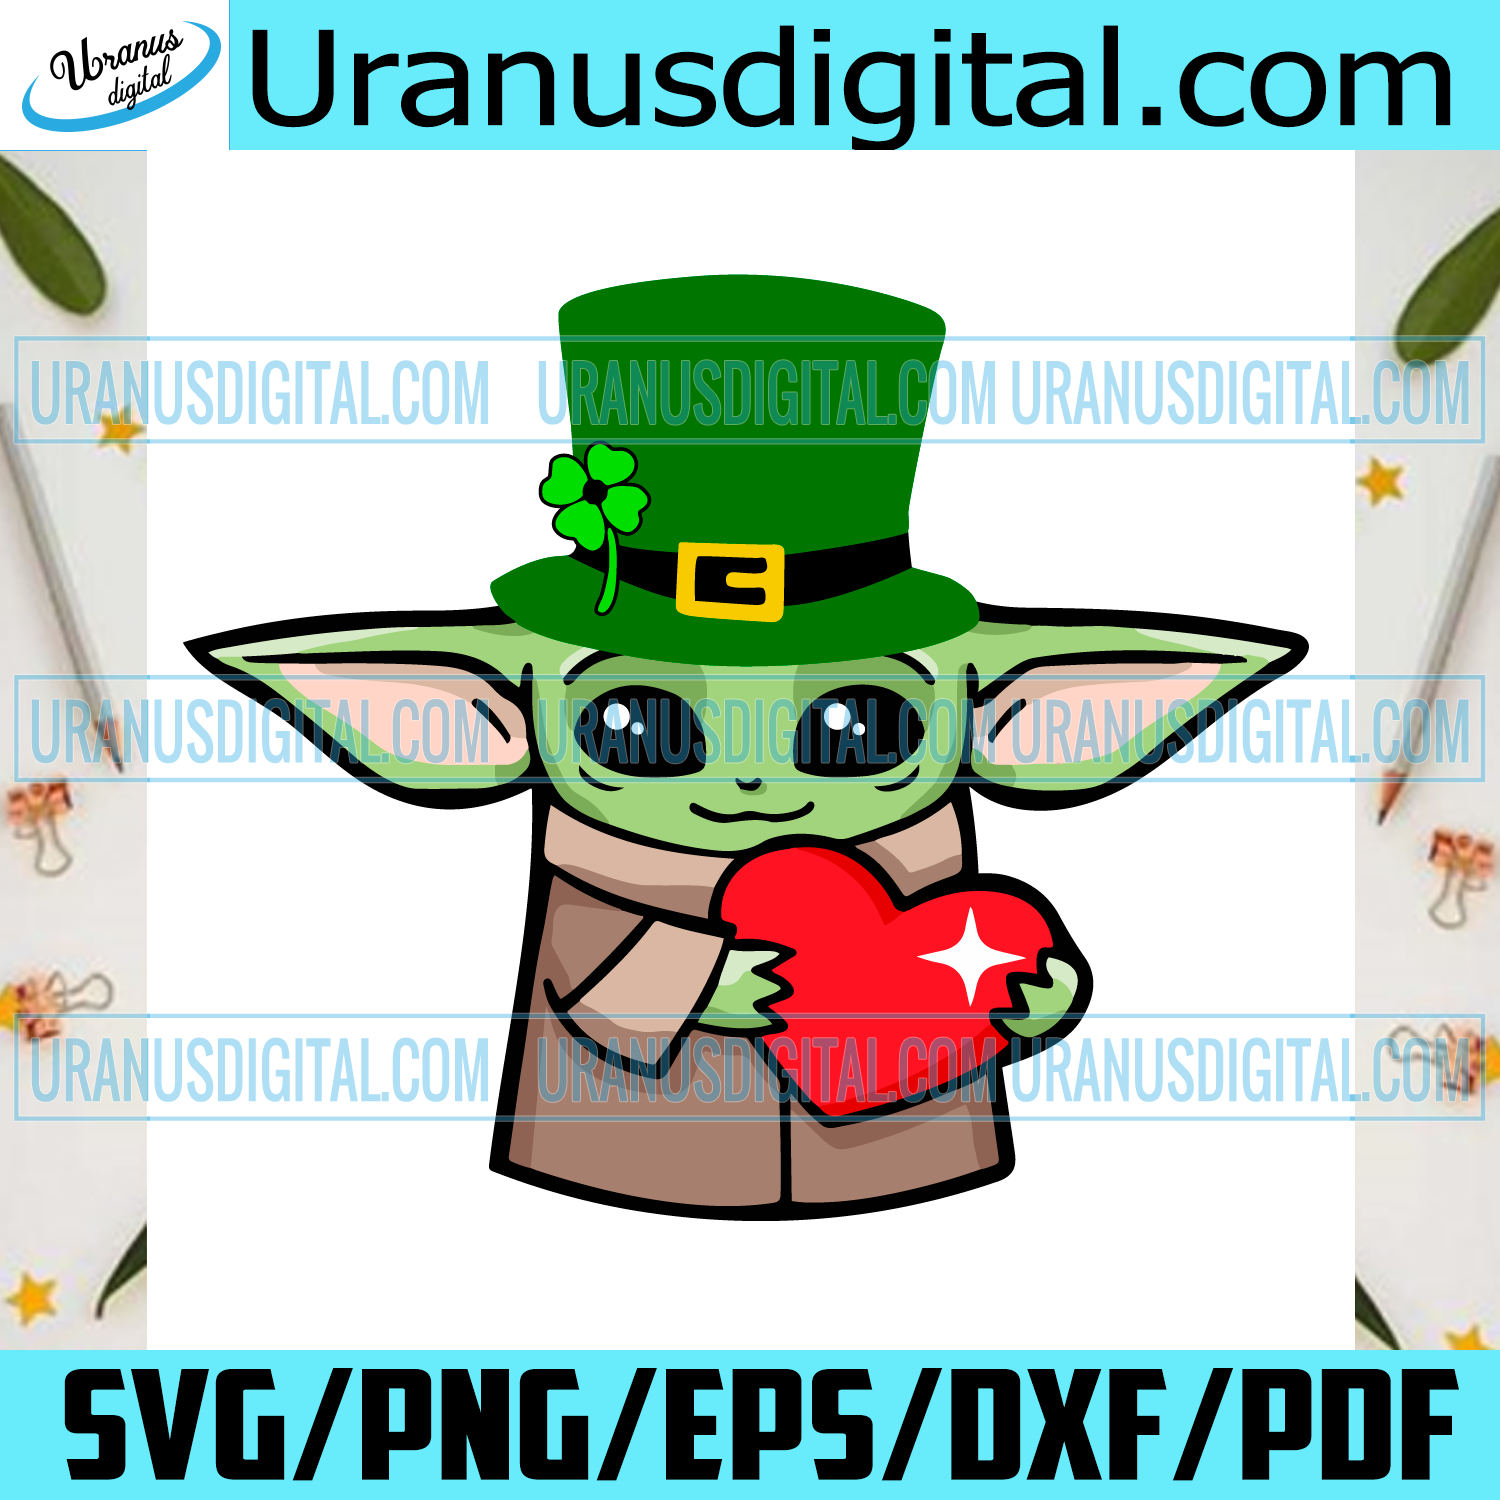 Baby Yoda St Patrick's Day Svg, Trending Svg, St Patrick's Day Svg, Baby Yoda Irish Day Svg